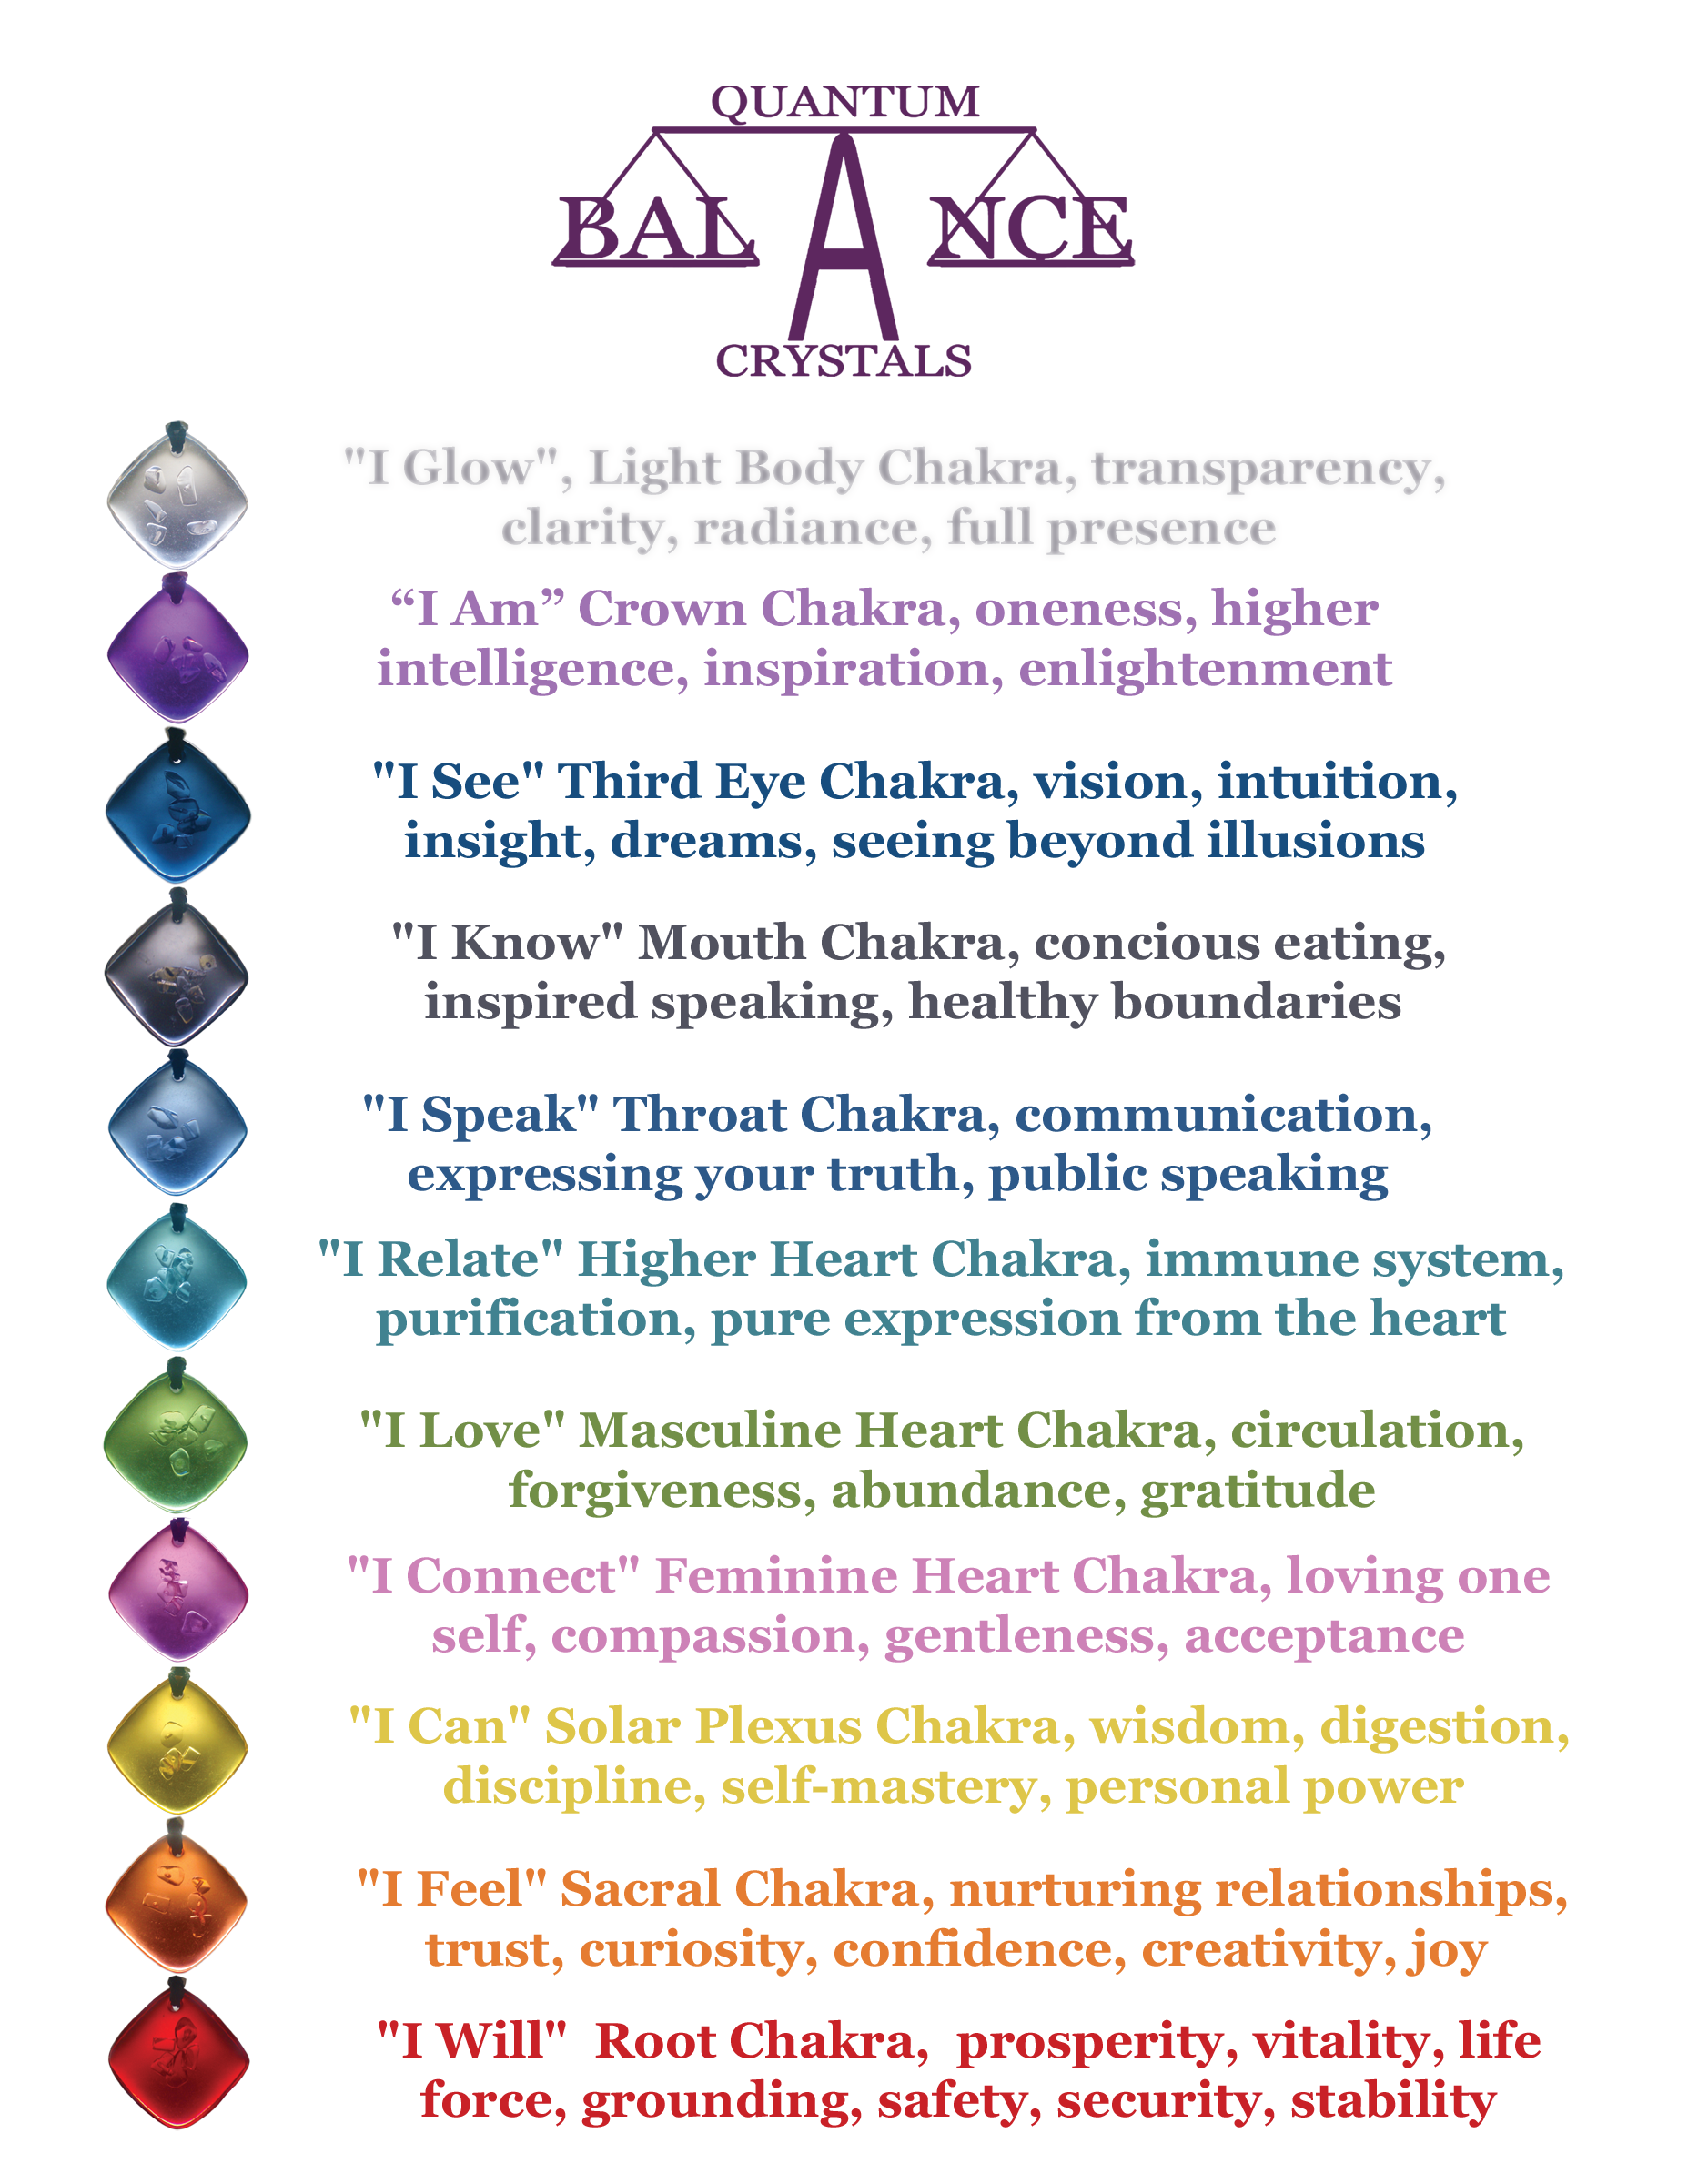 Quantum balance crystals effect on electromagnetic for Crystals and their meaning with pictures